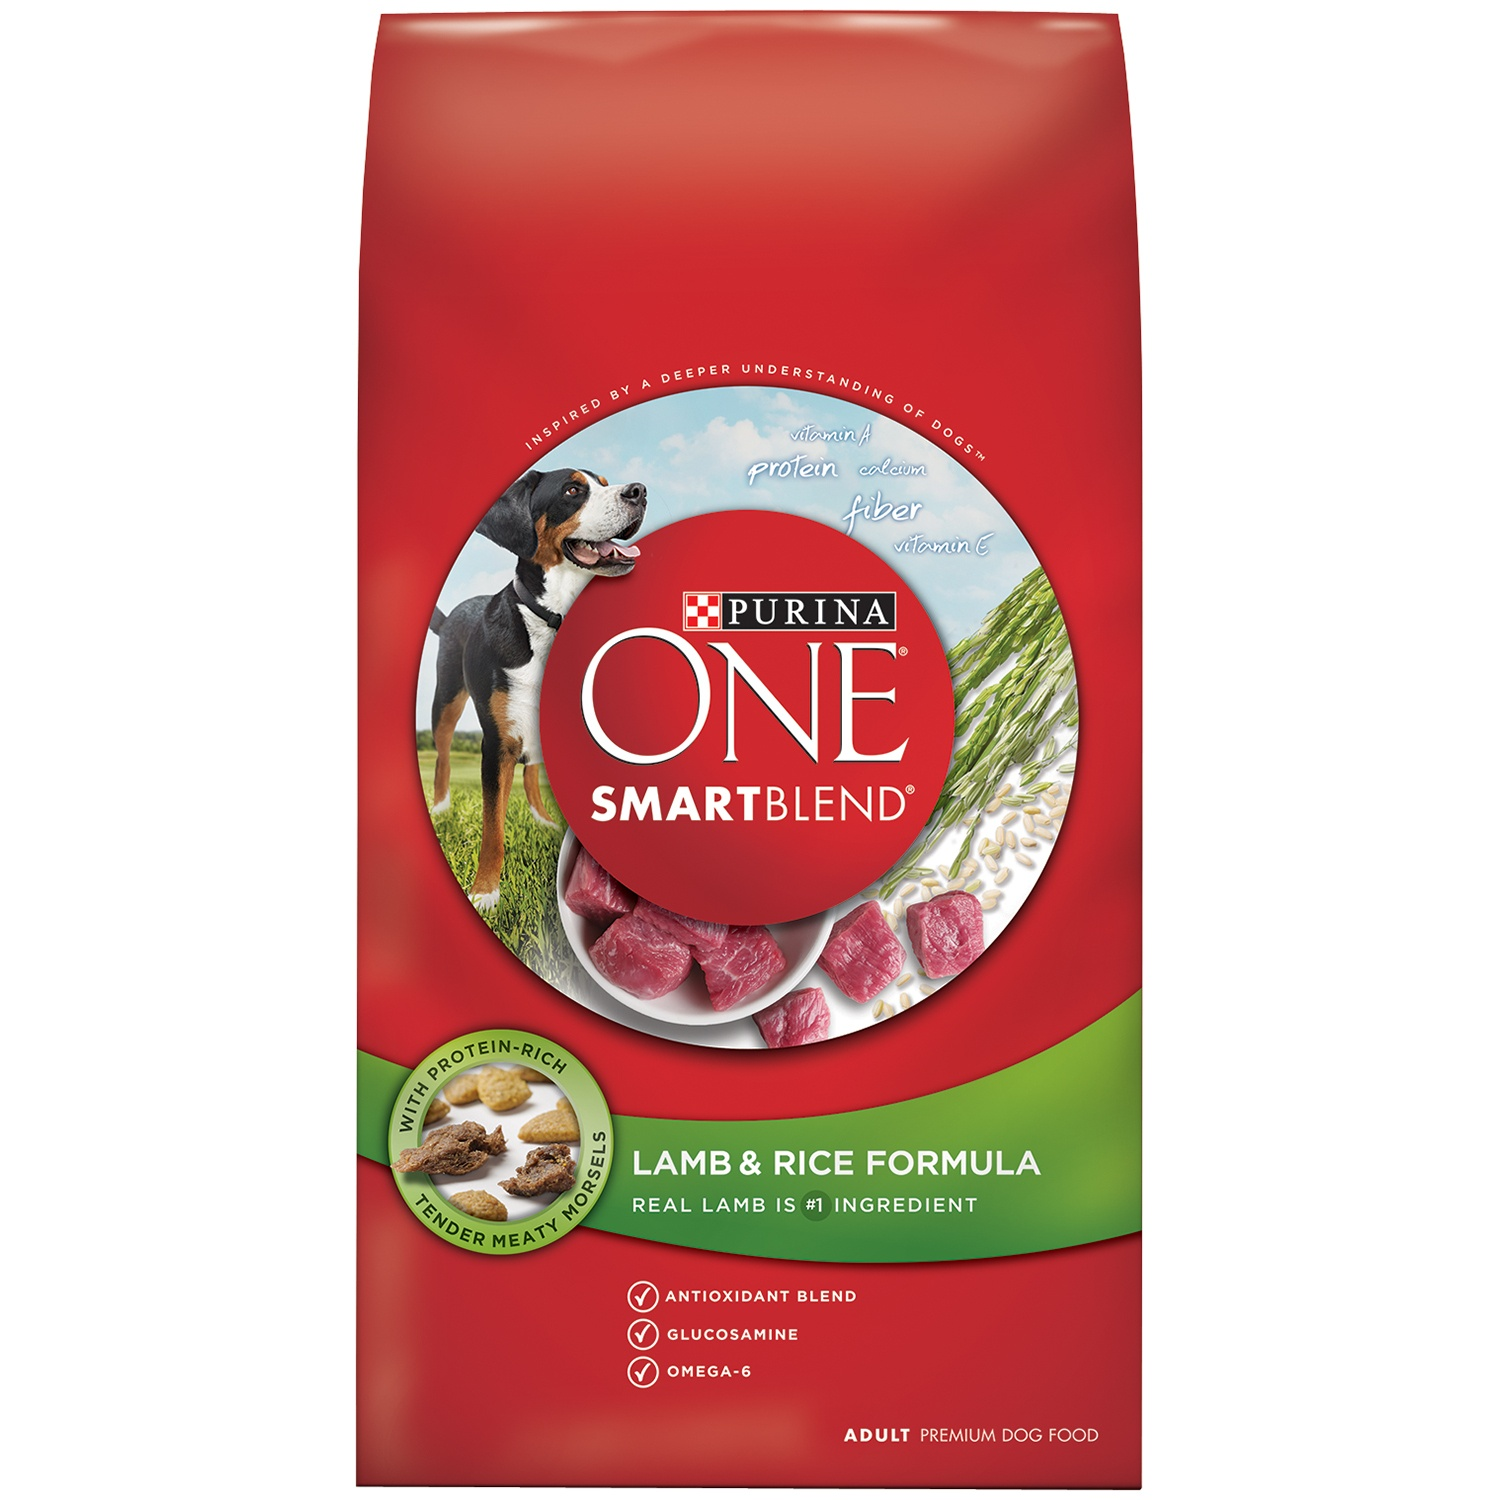 Purina One Smart Blend Dog Food For $2.50 At Family Dollar! - Free Printable Coupons For Purina One Dog Food